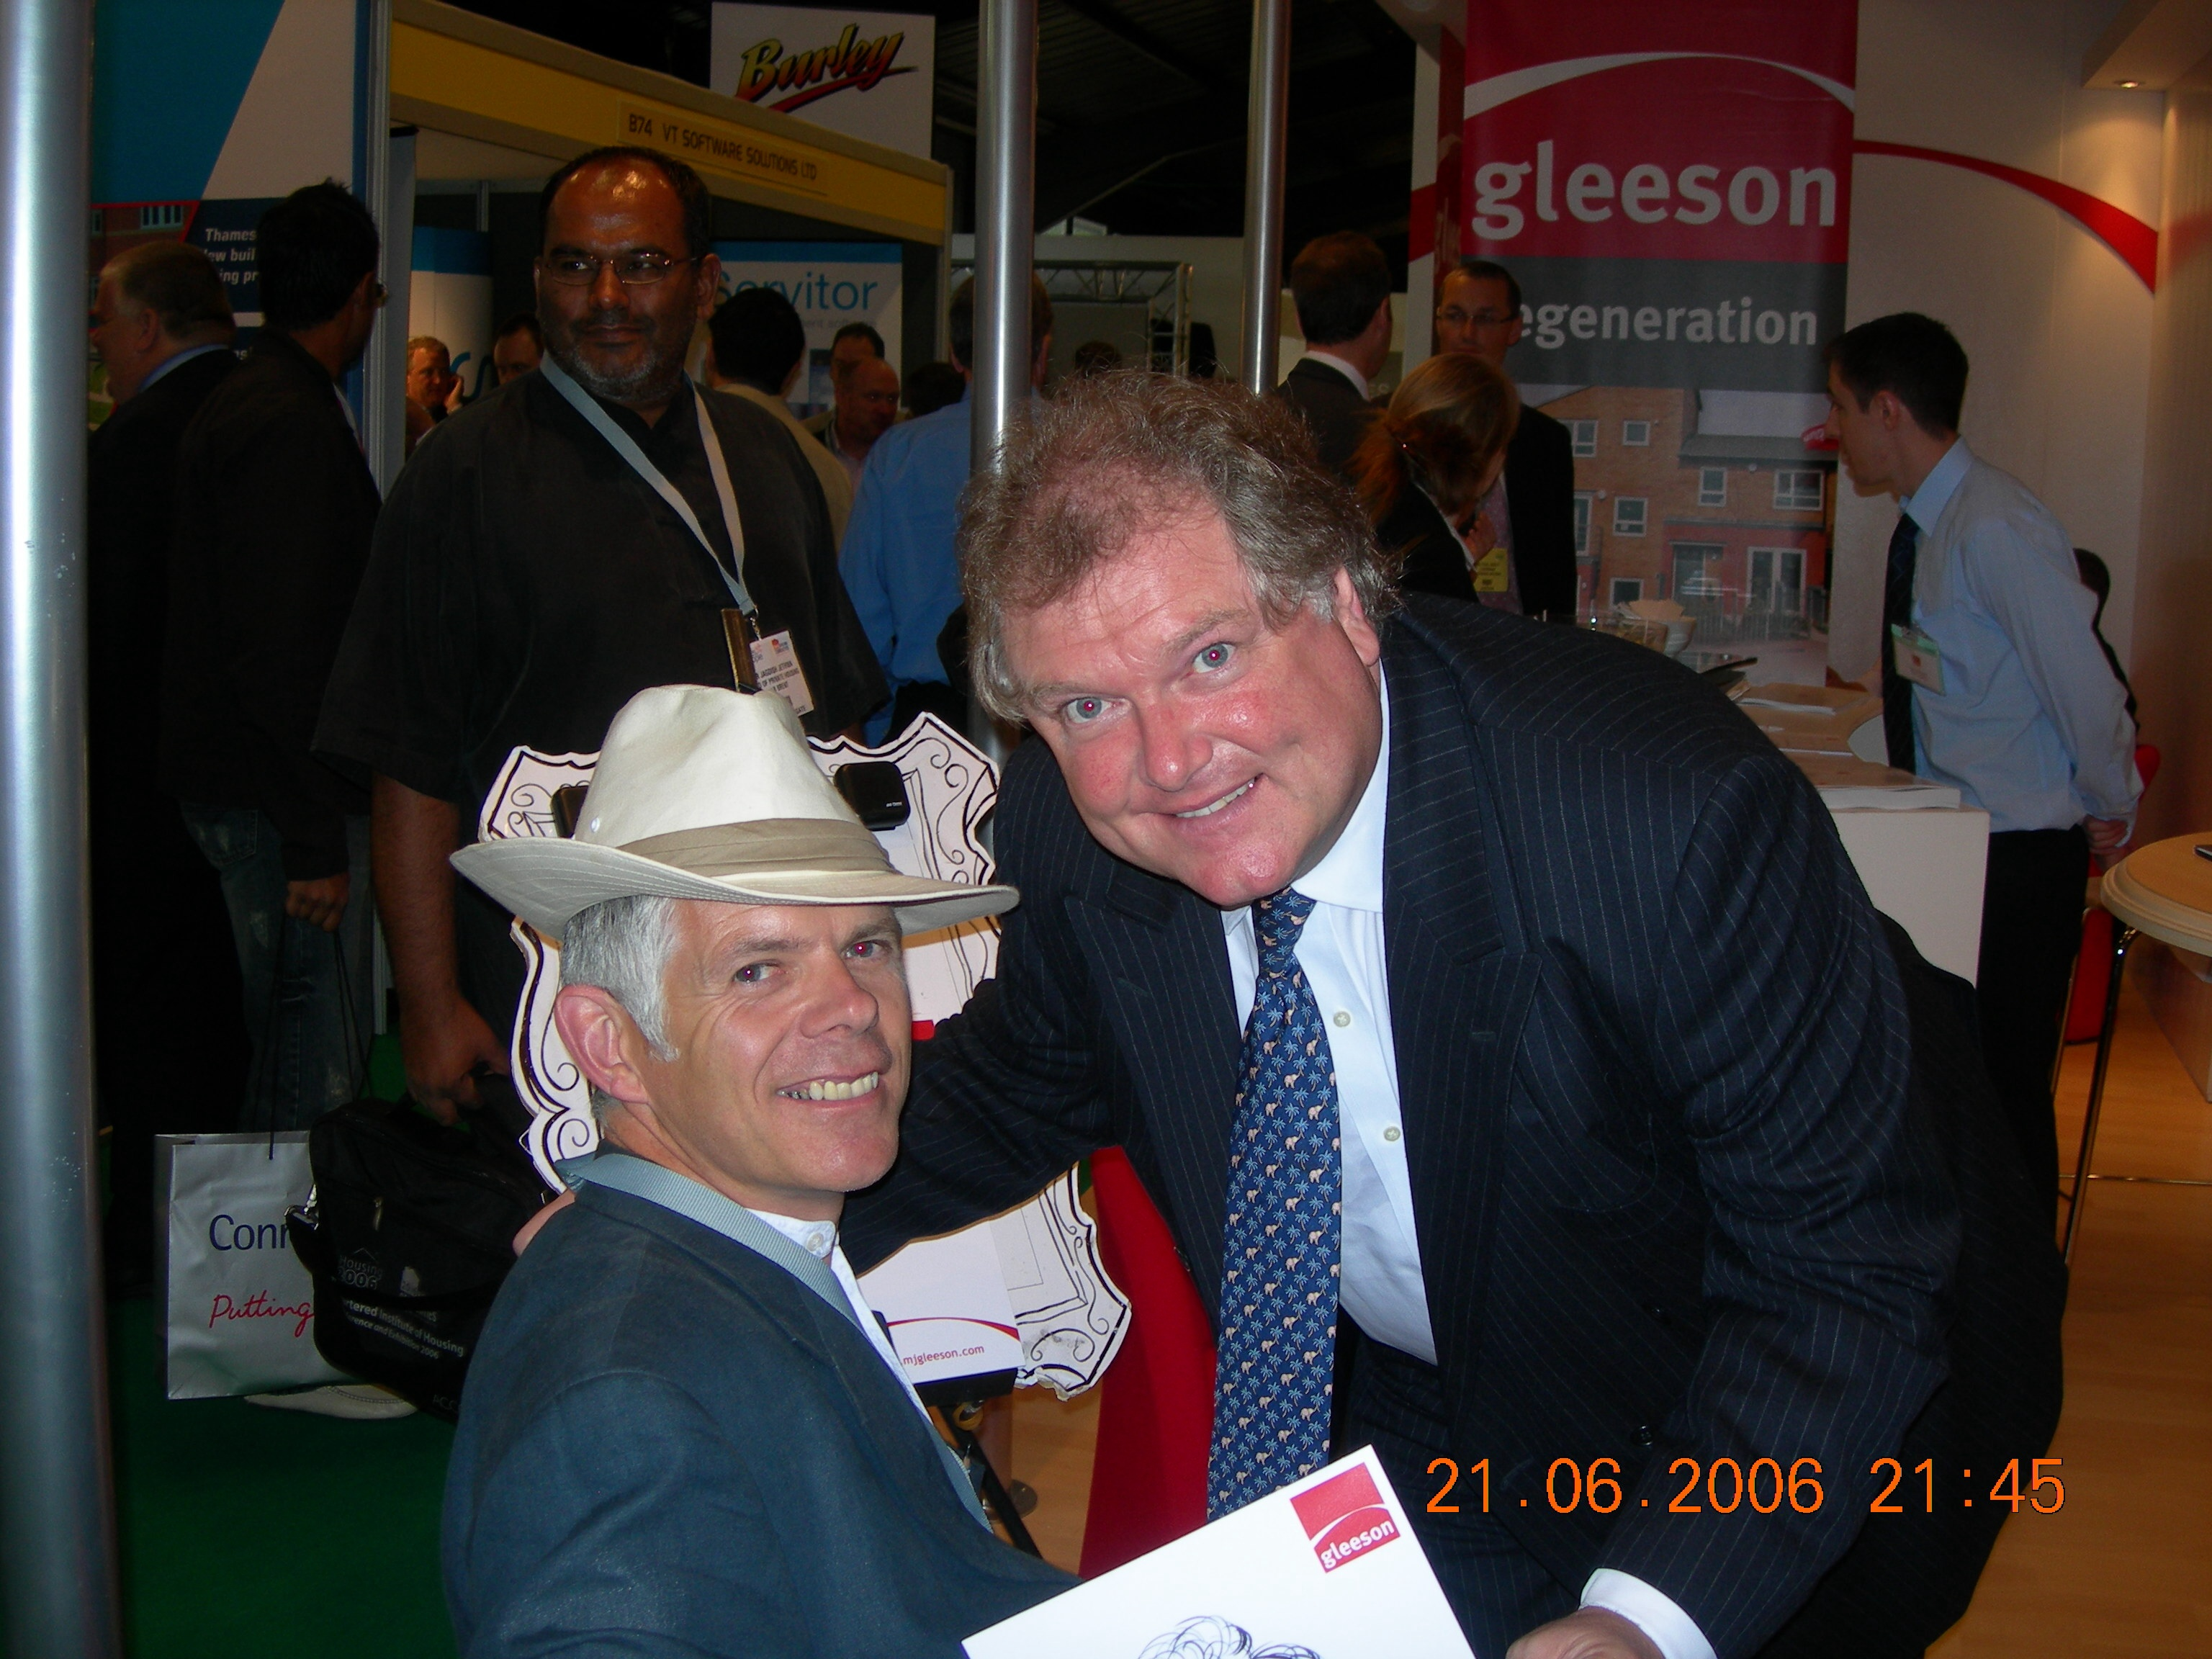 Chris caricature artist and Sir Digby Jones